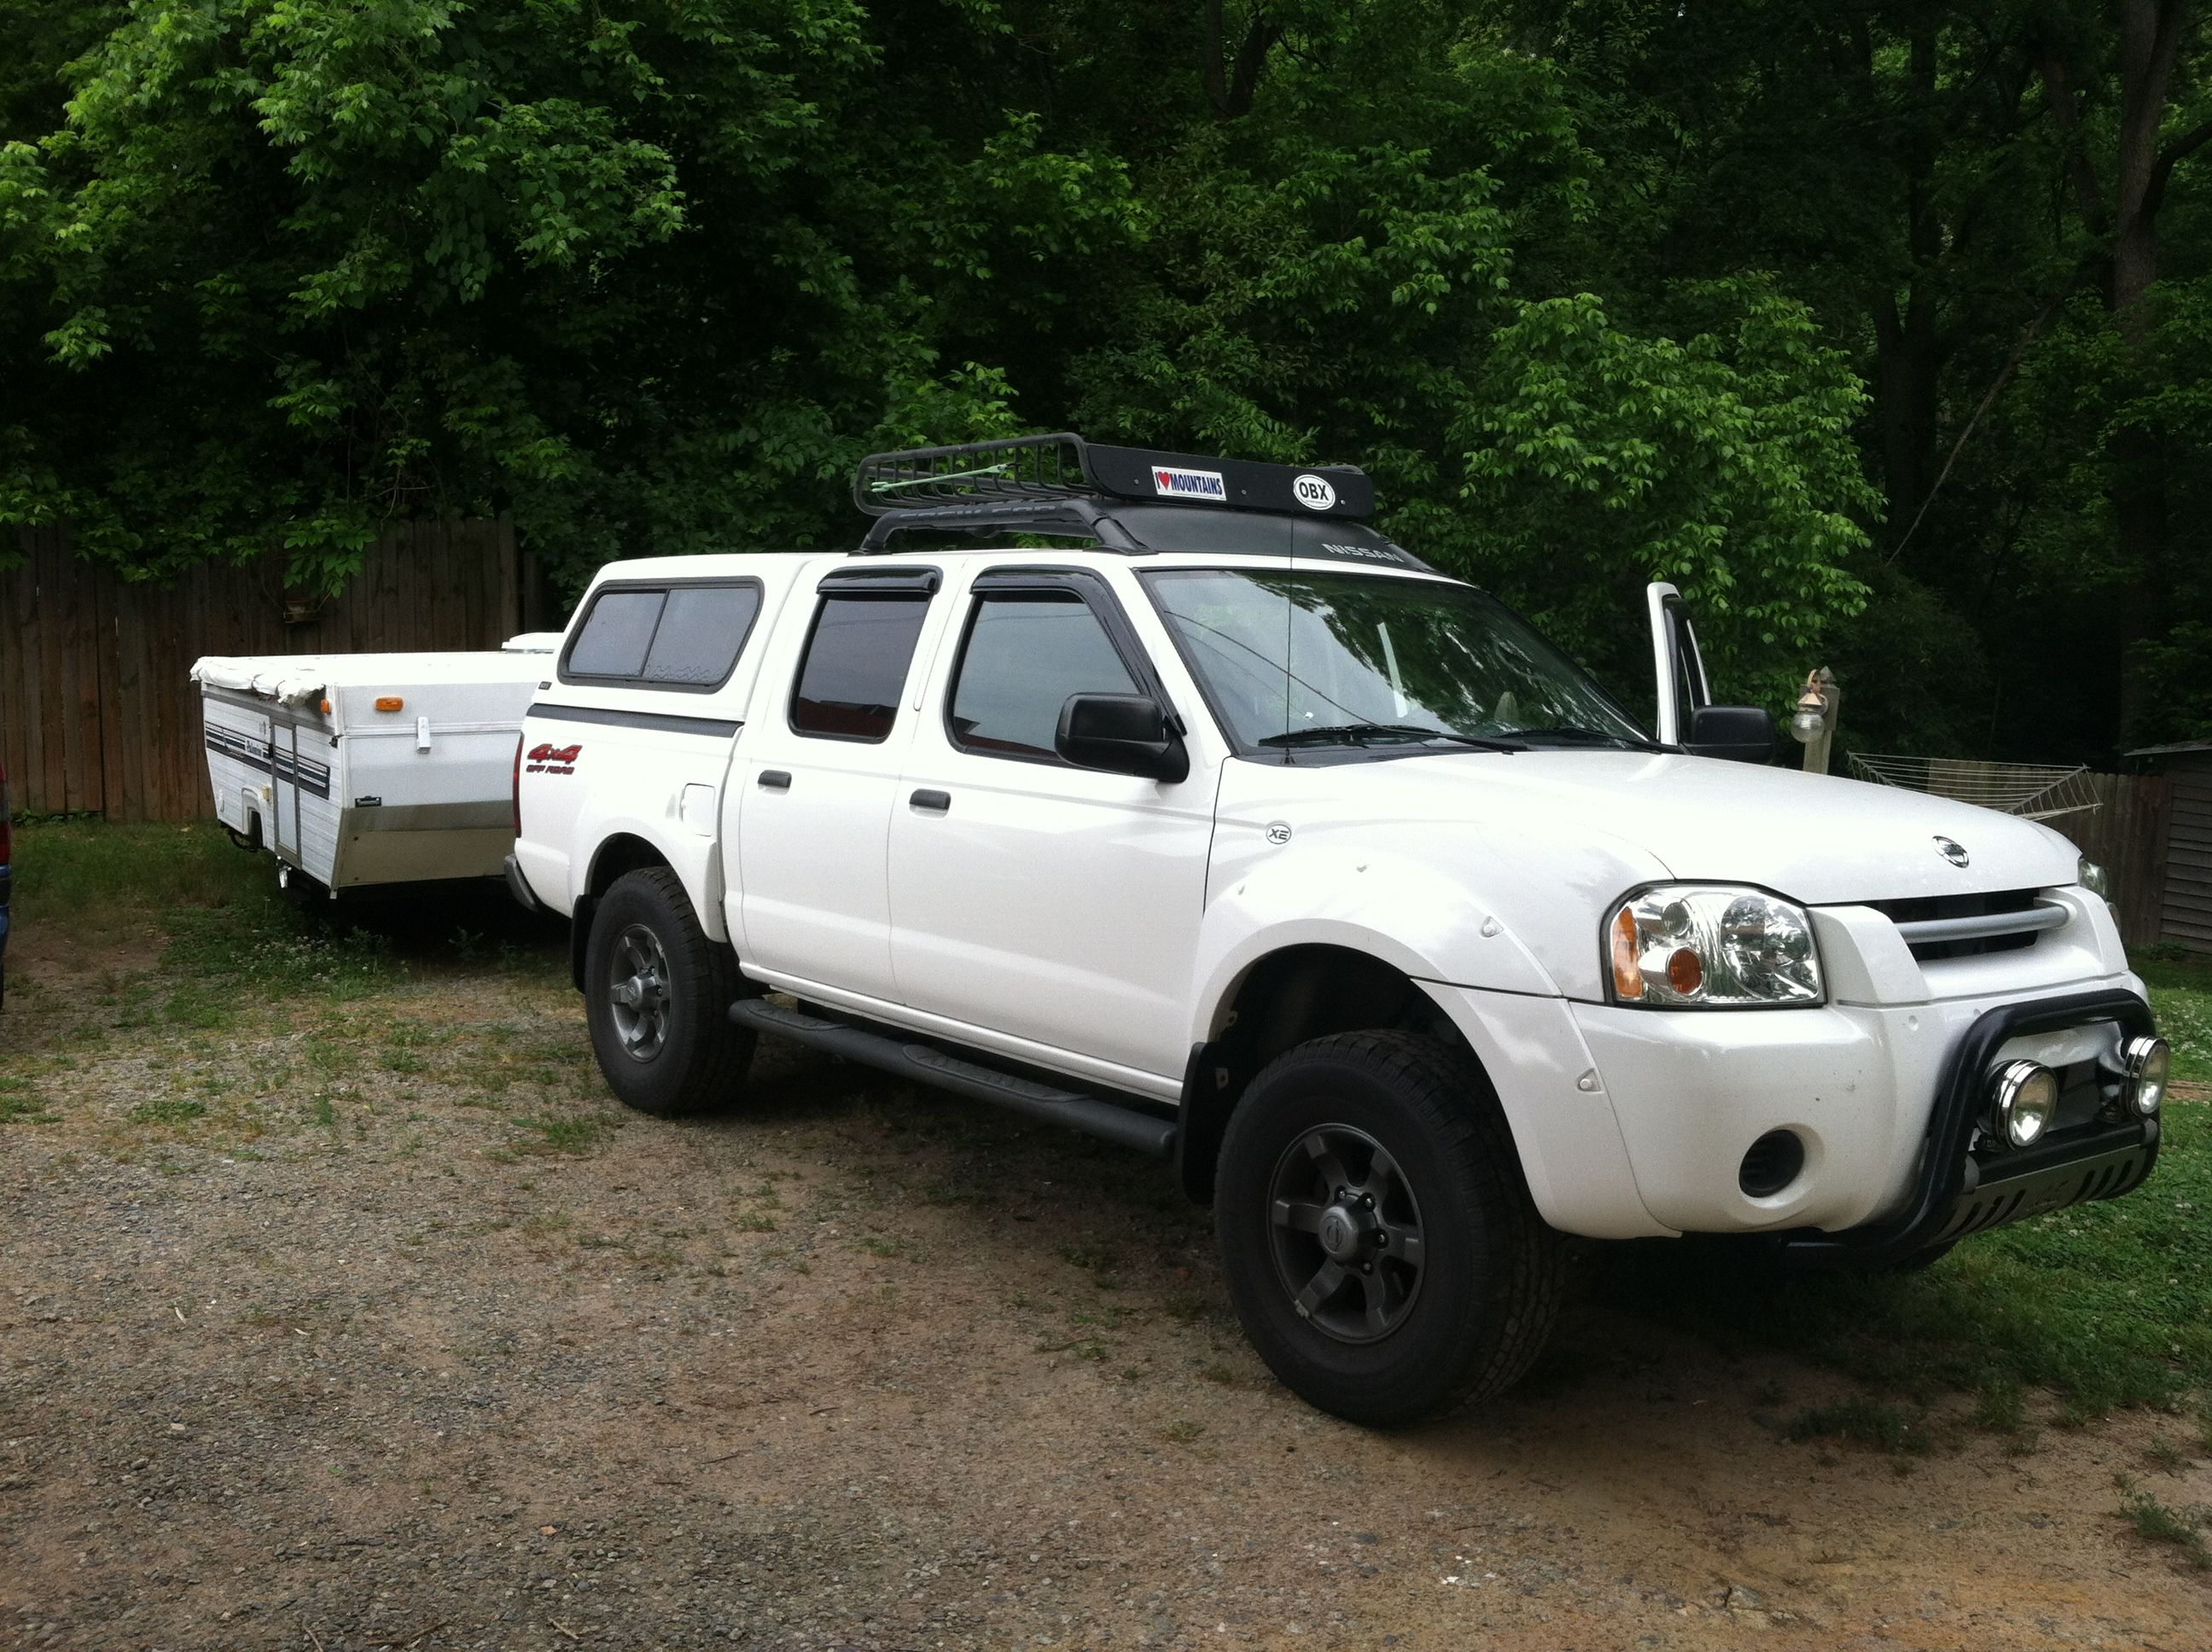 2016 nissan frontier sv truck crew cab frontier pinterest my 2004 nissan frontier and new to us 1993 palomino filly pop up camper vanachro Image collections